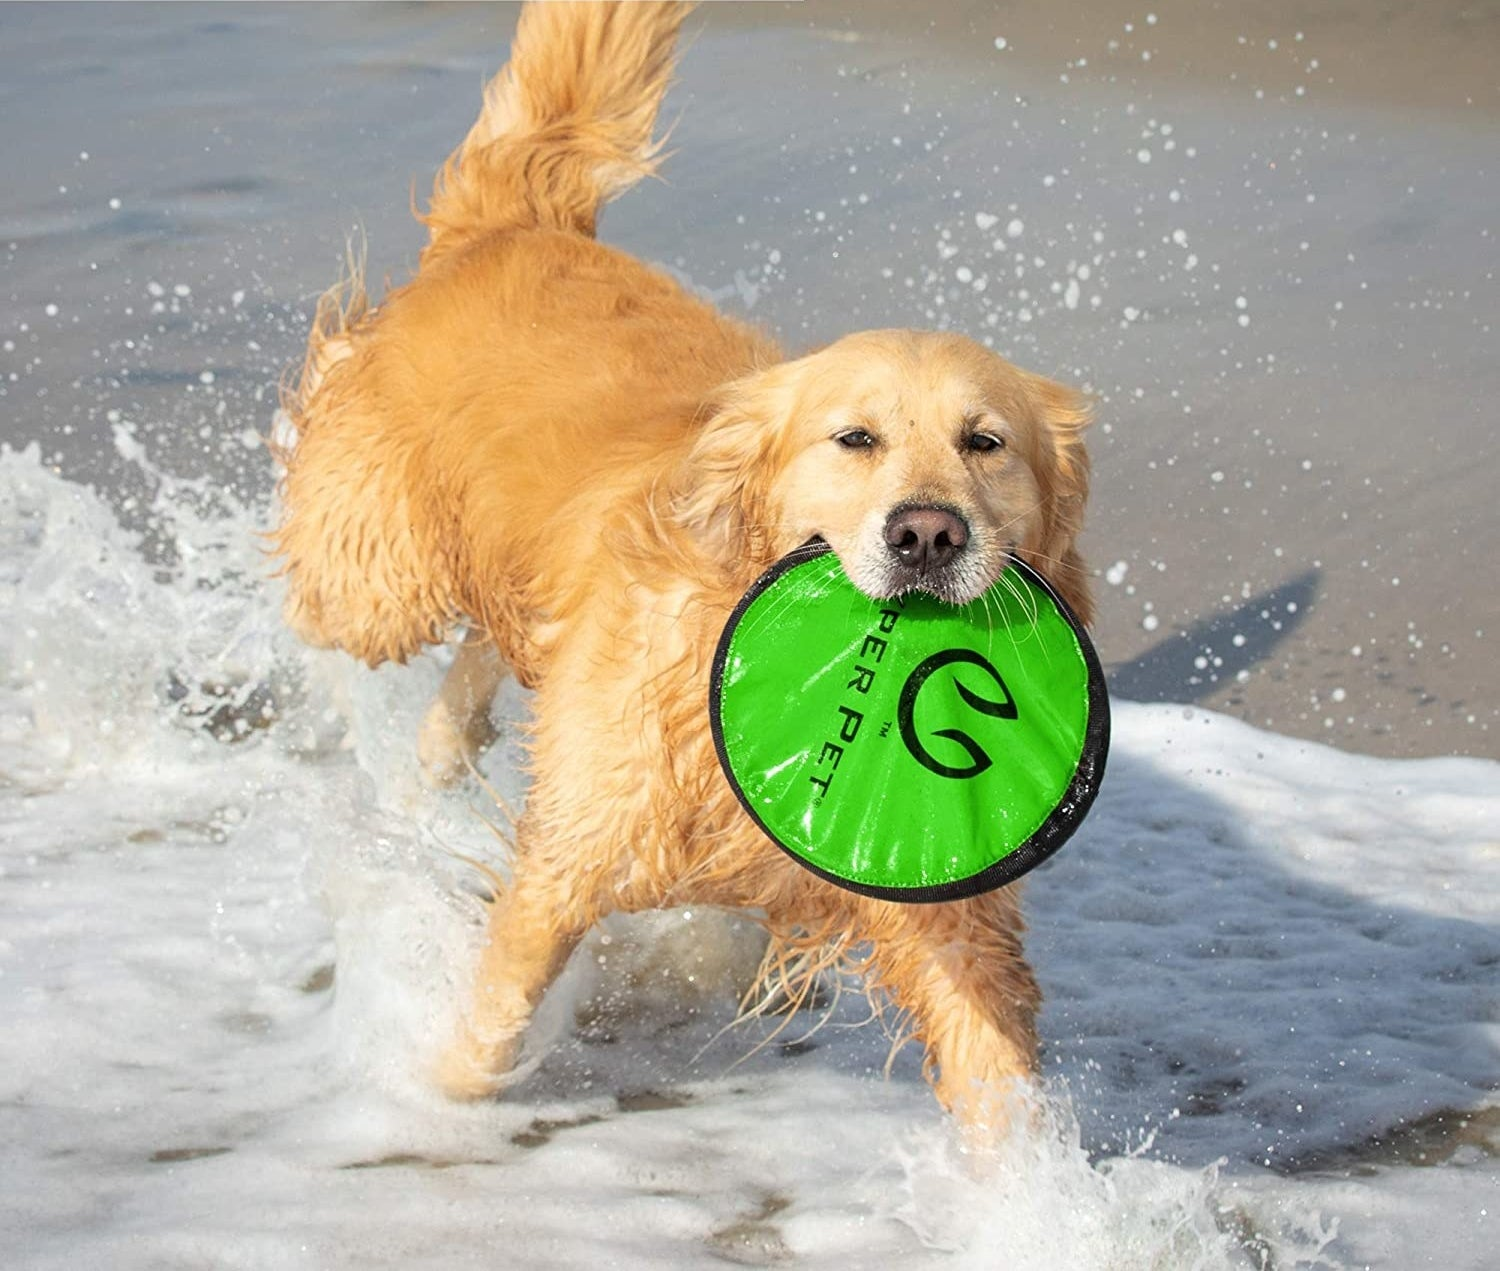 Dog holding frisbee in their mouth